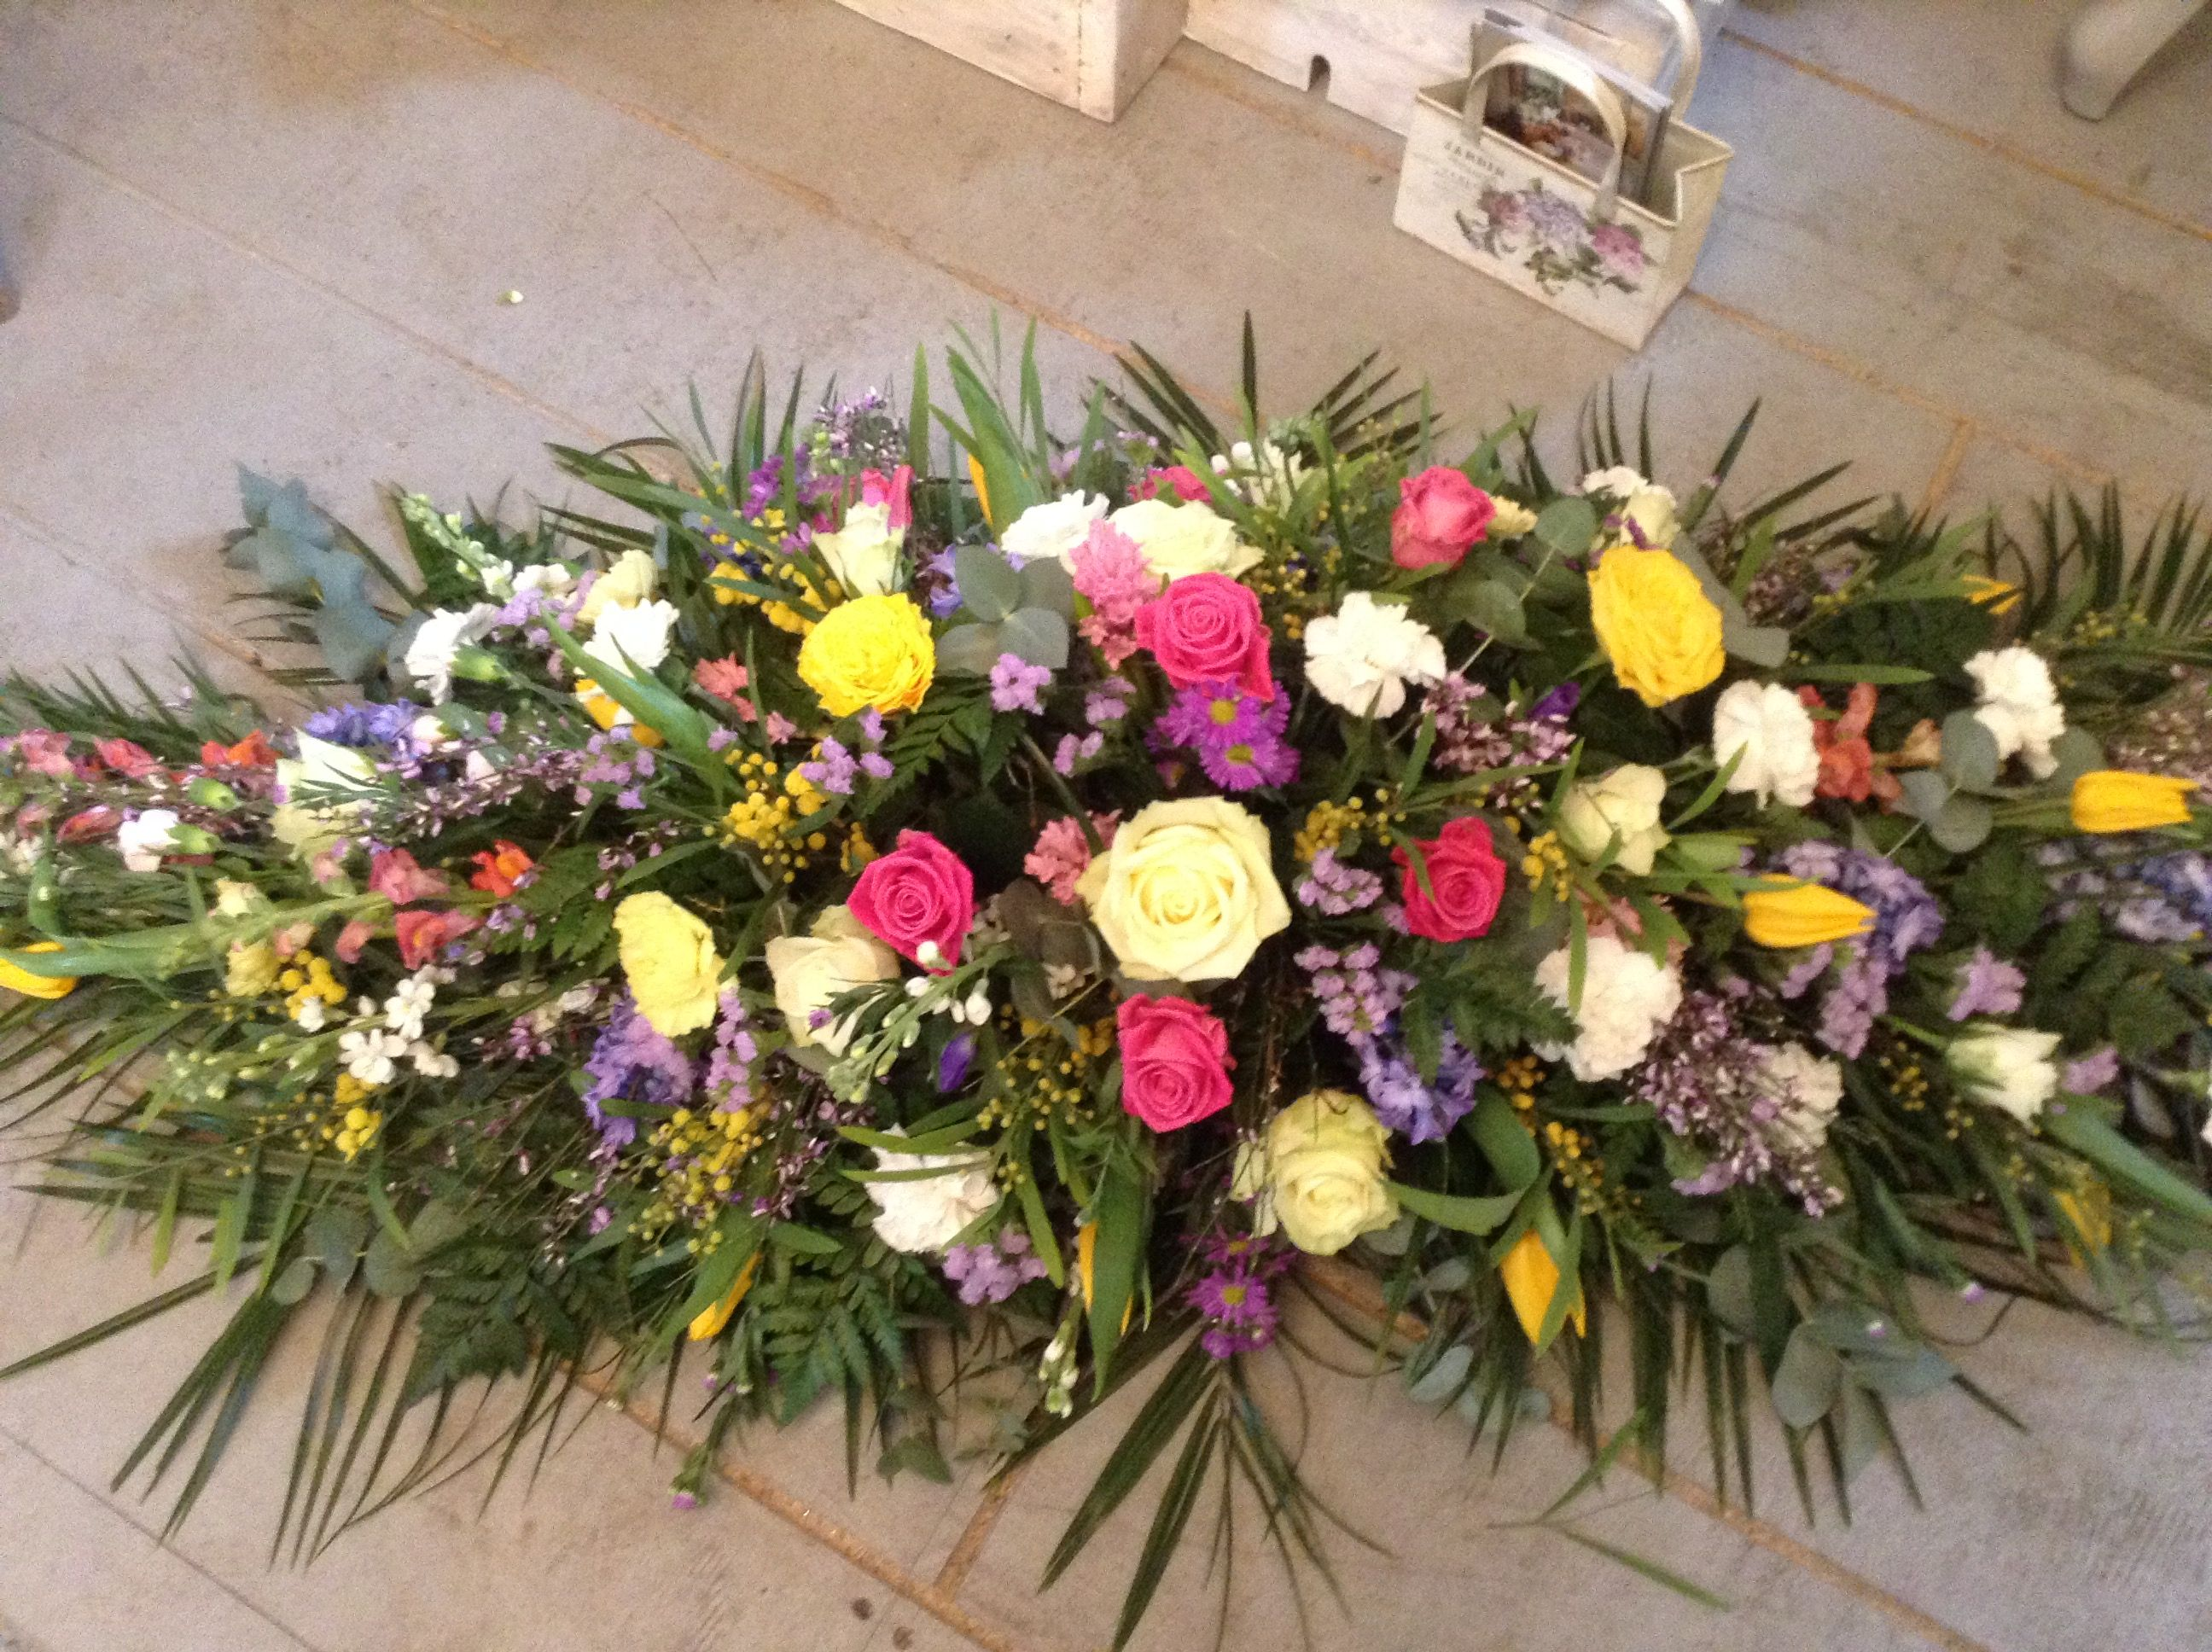 Bright and colourful spring coffin spray casket funeral tribute bright and colourful spring coffin spray casket funeral tribute thefloralartstudio izmirmasajfo